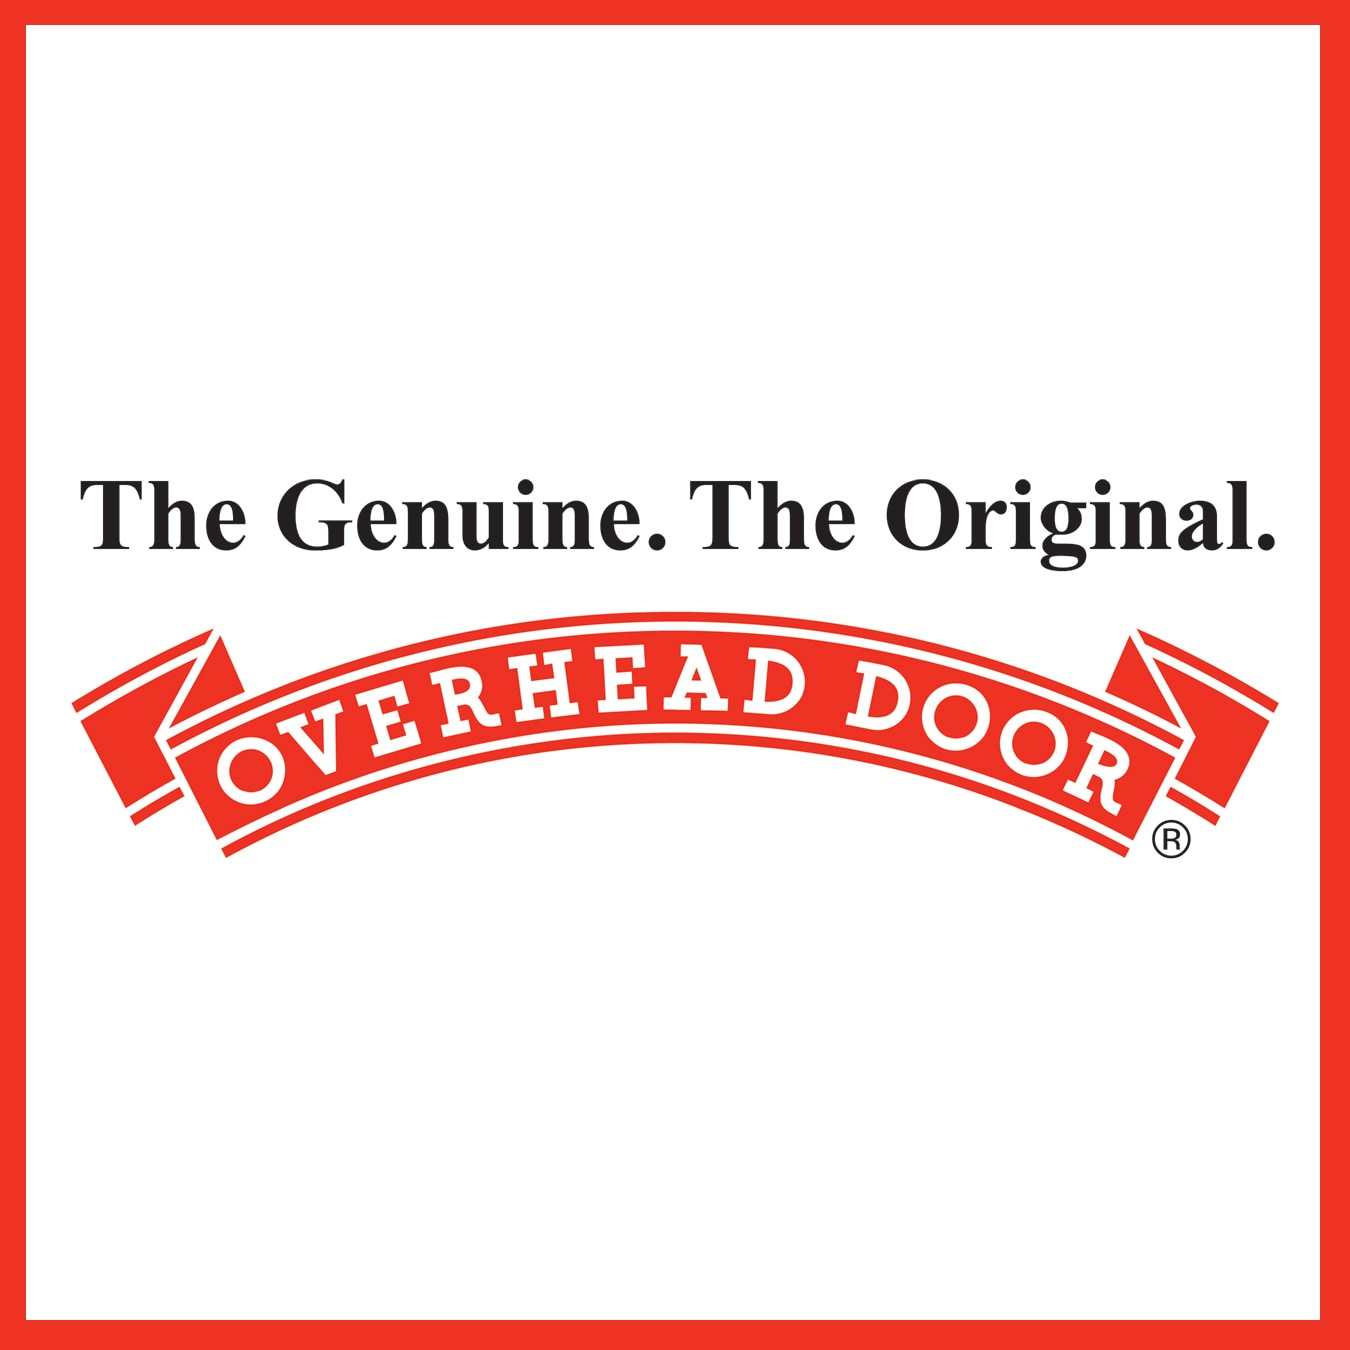 Overhead Door Co of Washington DC